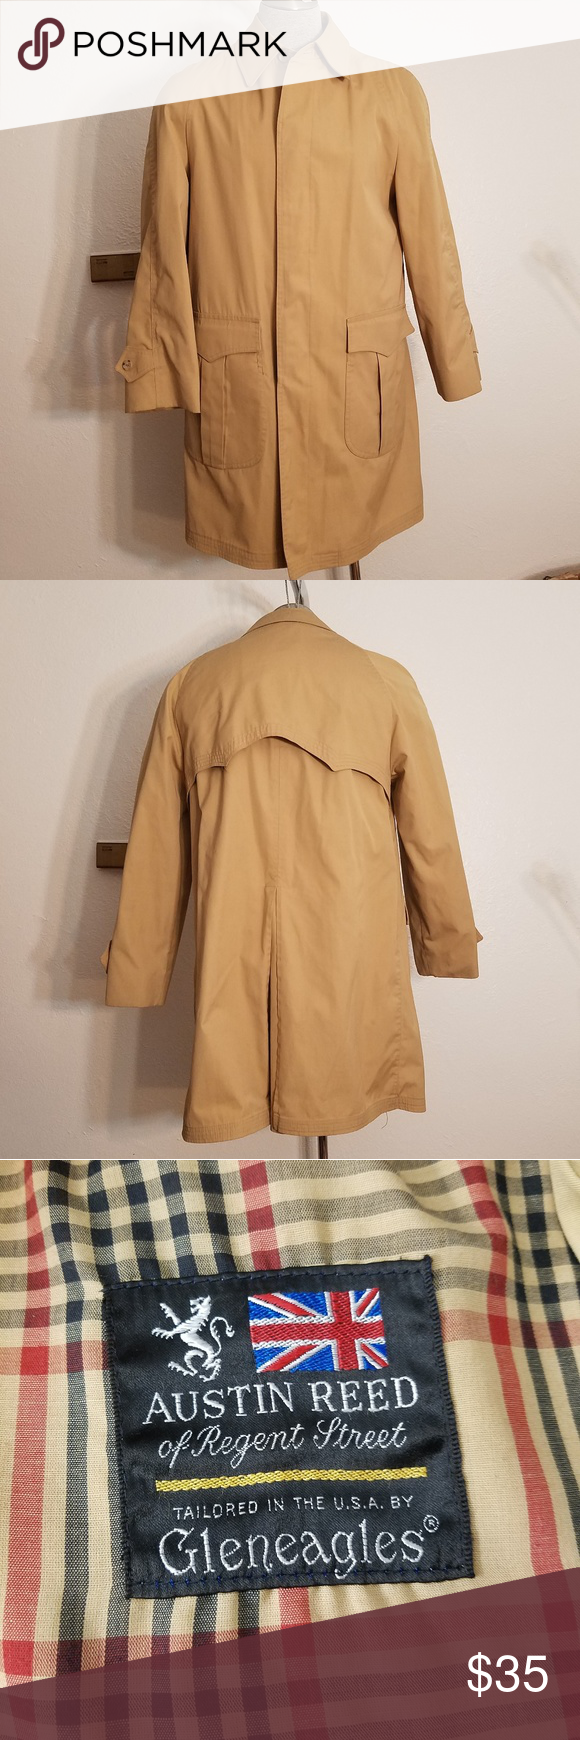 Austin Reed Mens Khaki Rain Coat Jacket Is Lined But Includes Zipper For An Additional Lining Which Is Not Present Chest 24 Raincoat Mens Khakis Austin Reed